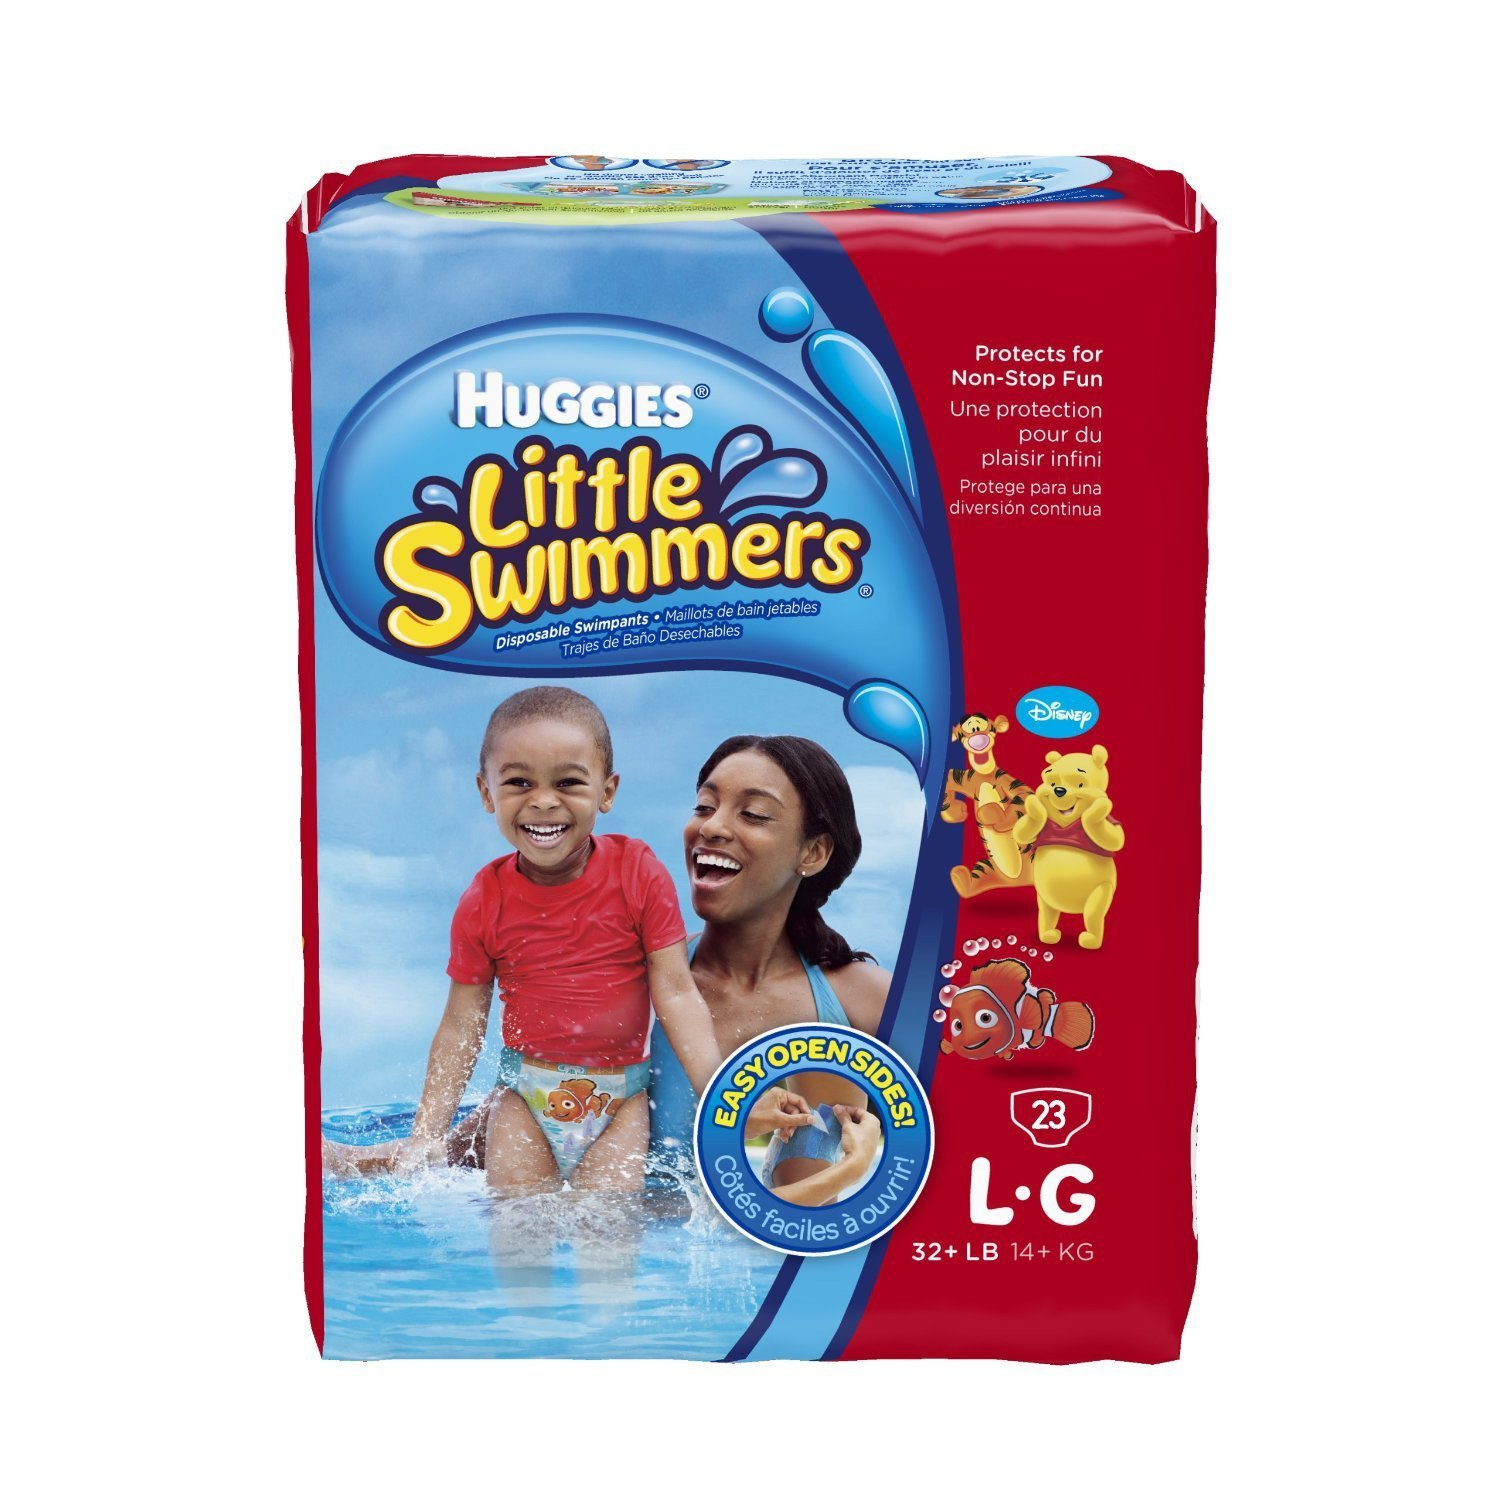 Amazon.com: Huggies Little Swimmers Disposable Swimpants (Character May  Vary) 23 ct - L-G: Health & Personal Care